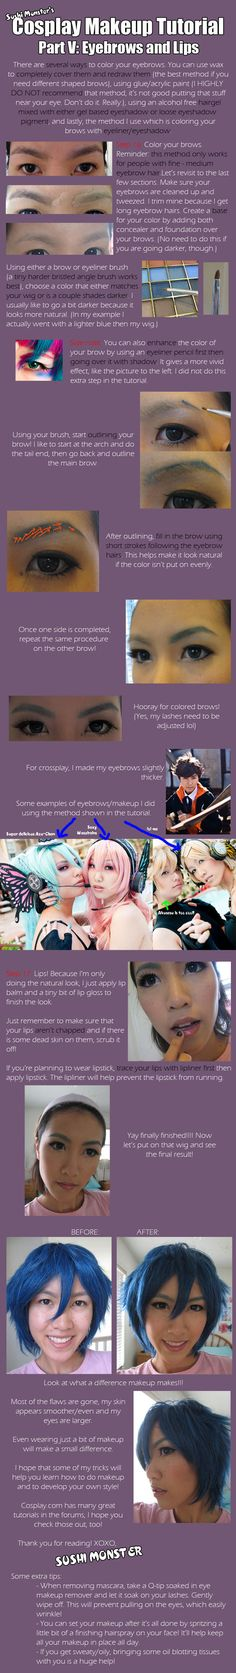 Cos Makeup Tutorial Part V by the-sushi-monster.deviantart.com on @deviantART